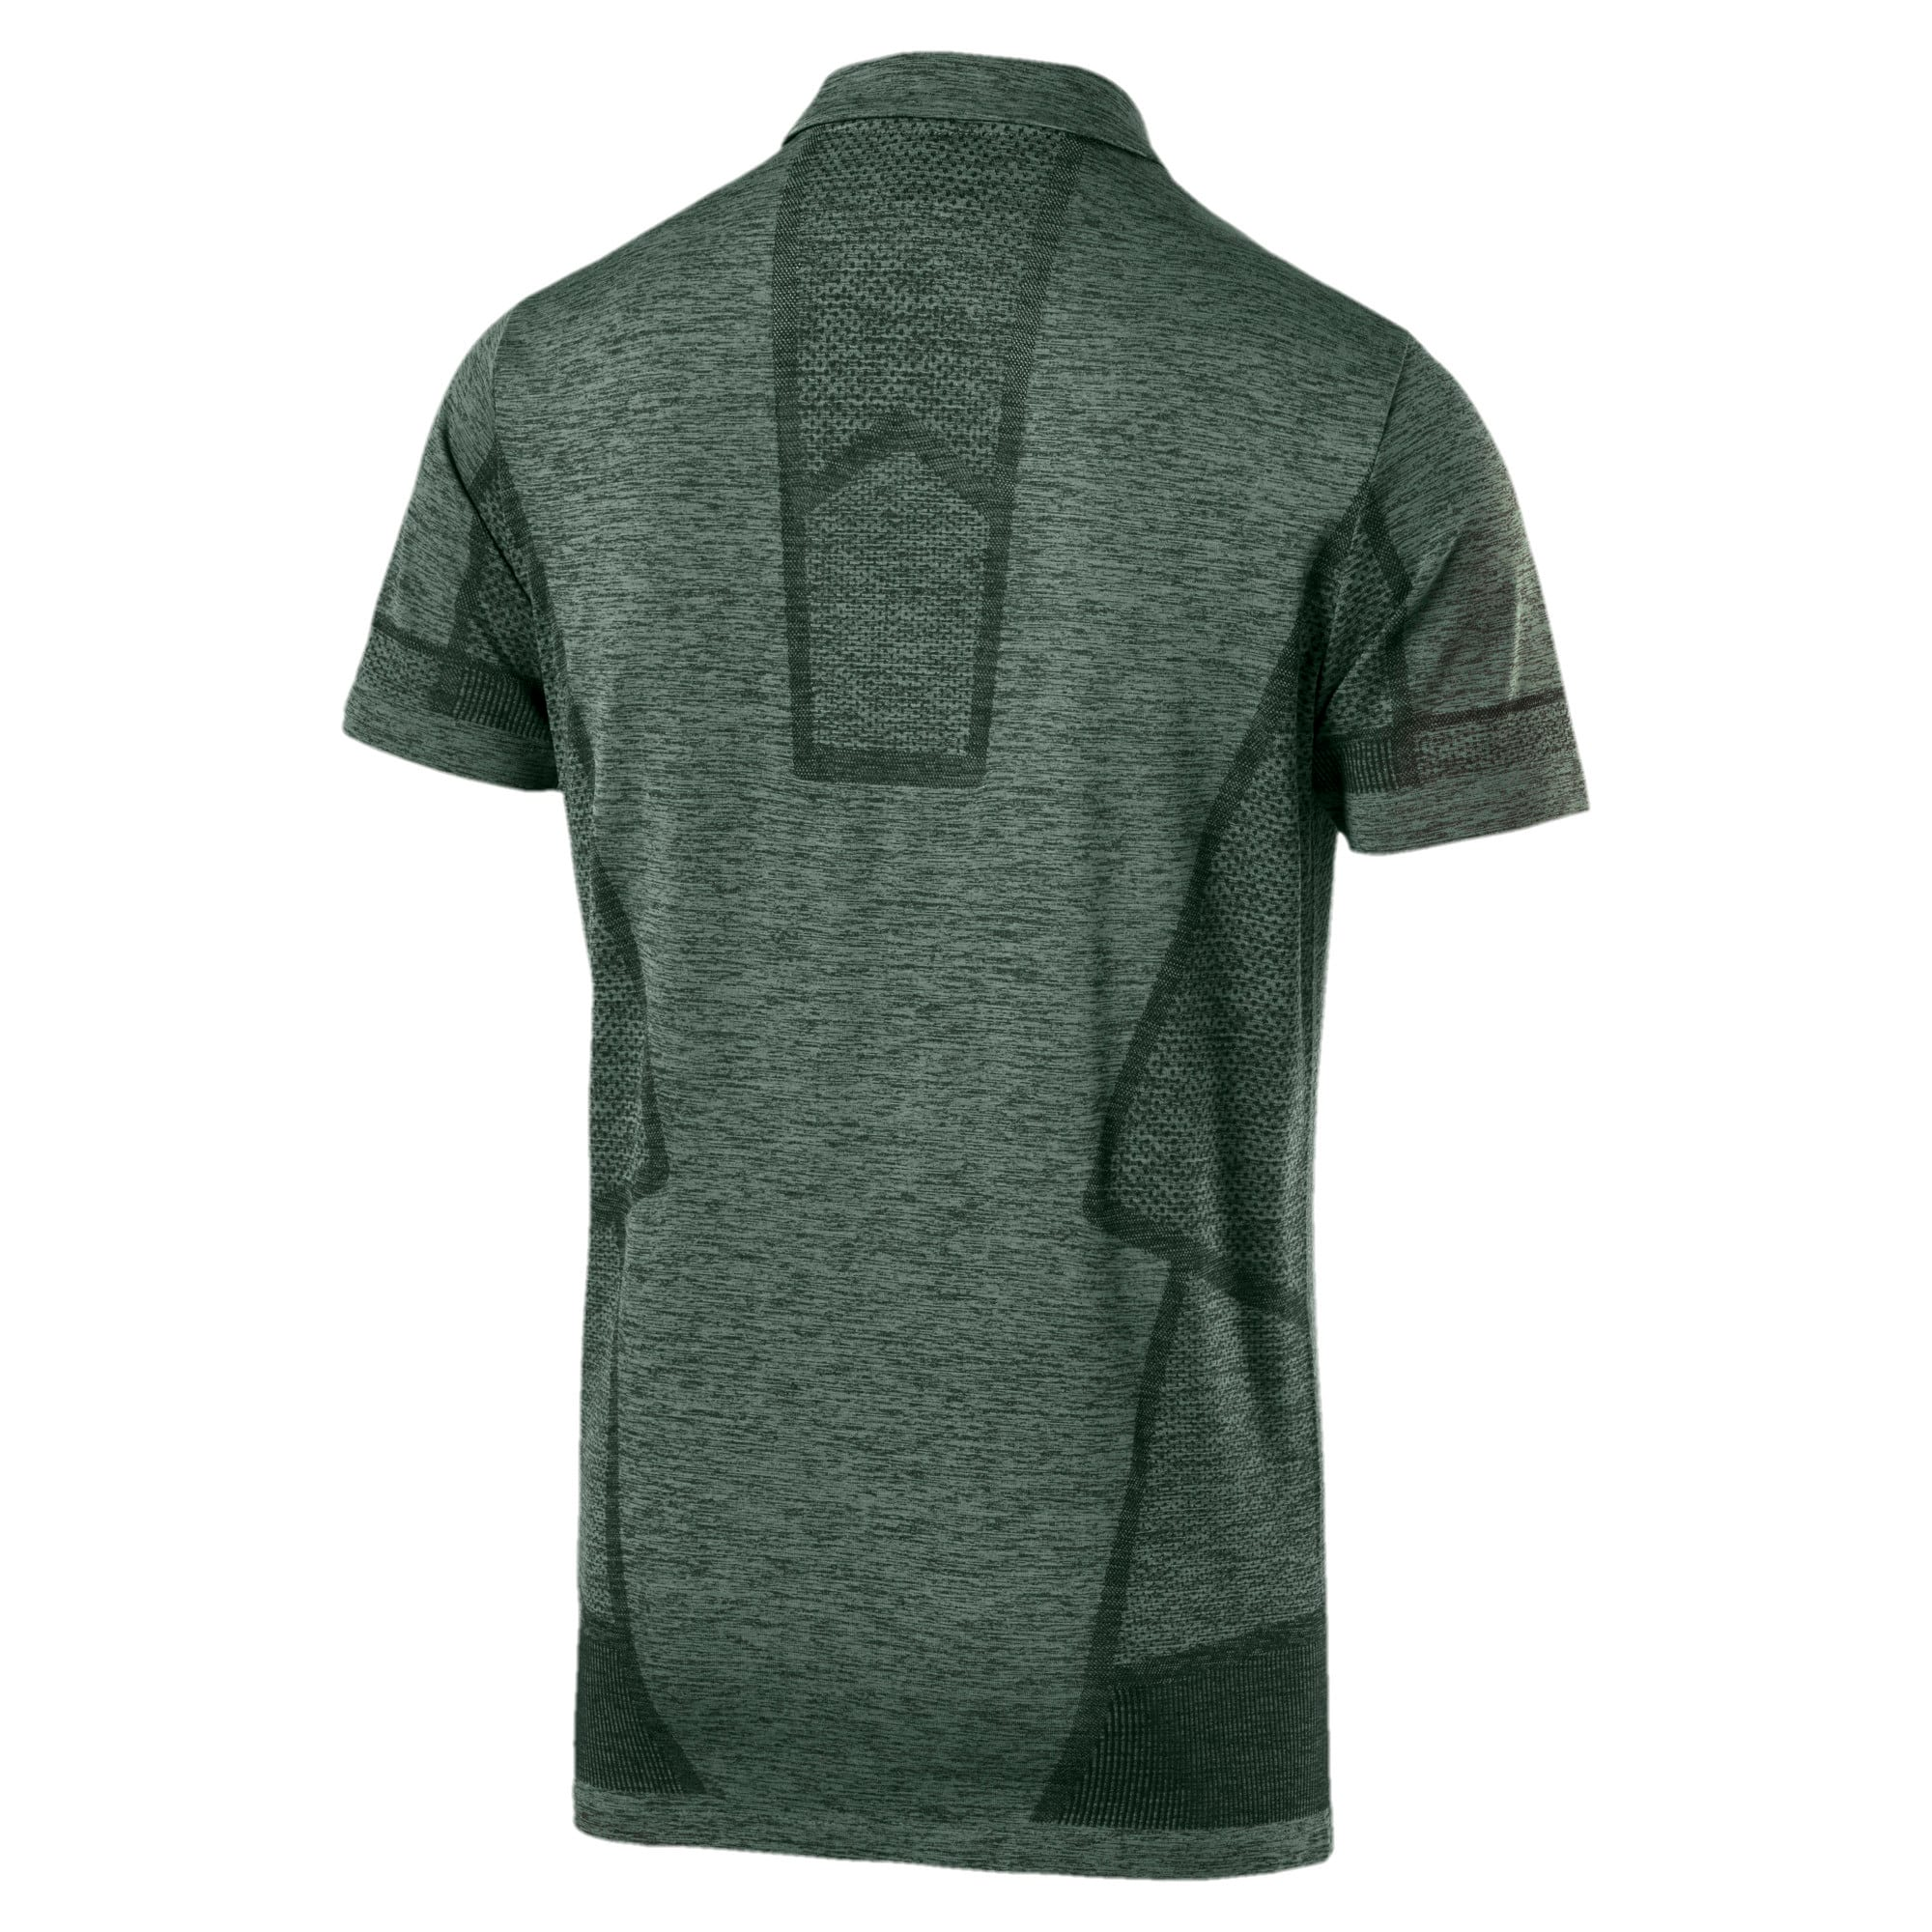 Thumbnail 4 of MERCEDES AMG PETRONAS Men's evoKNIT Polo, Laurel Wreath, medium-IND